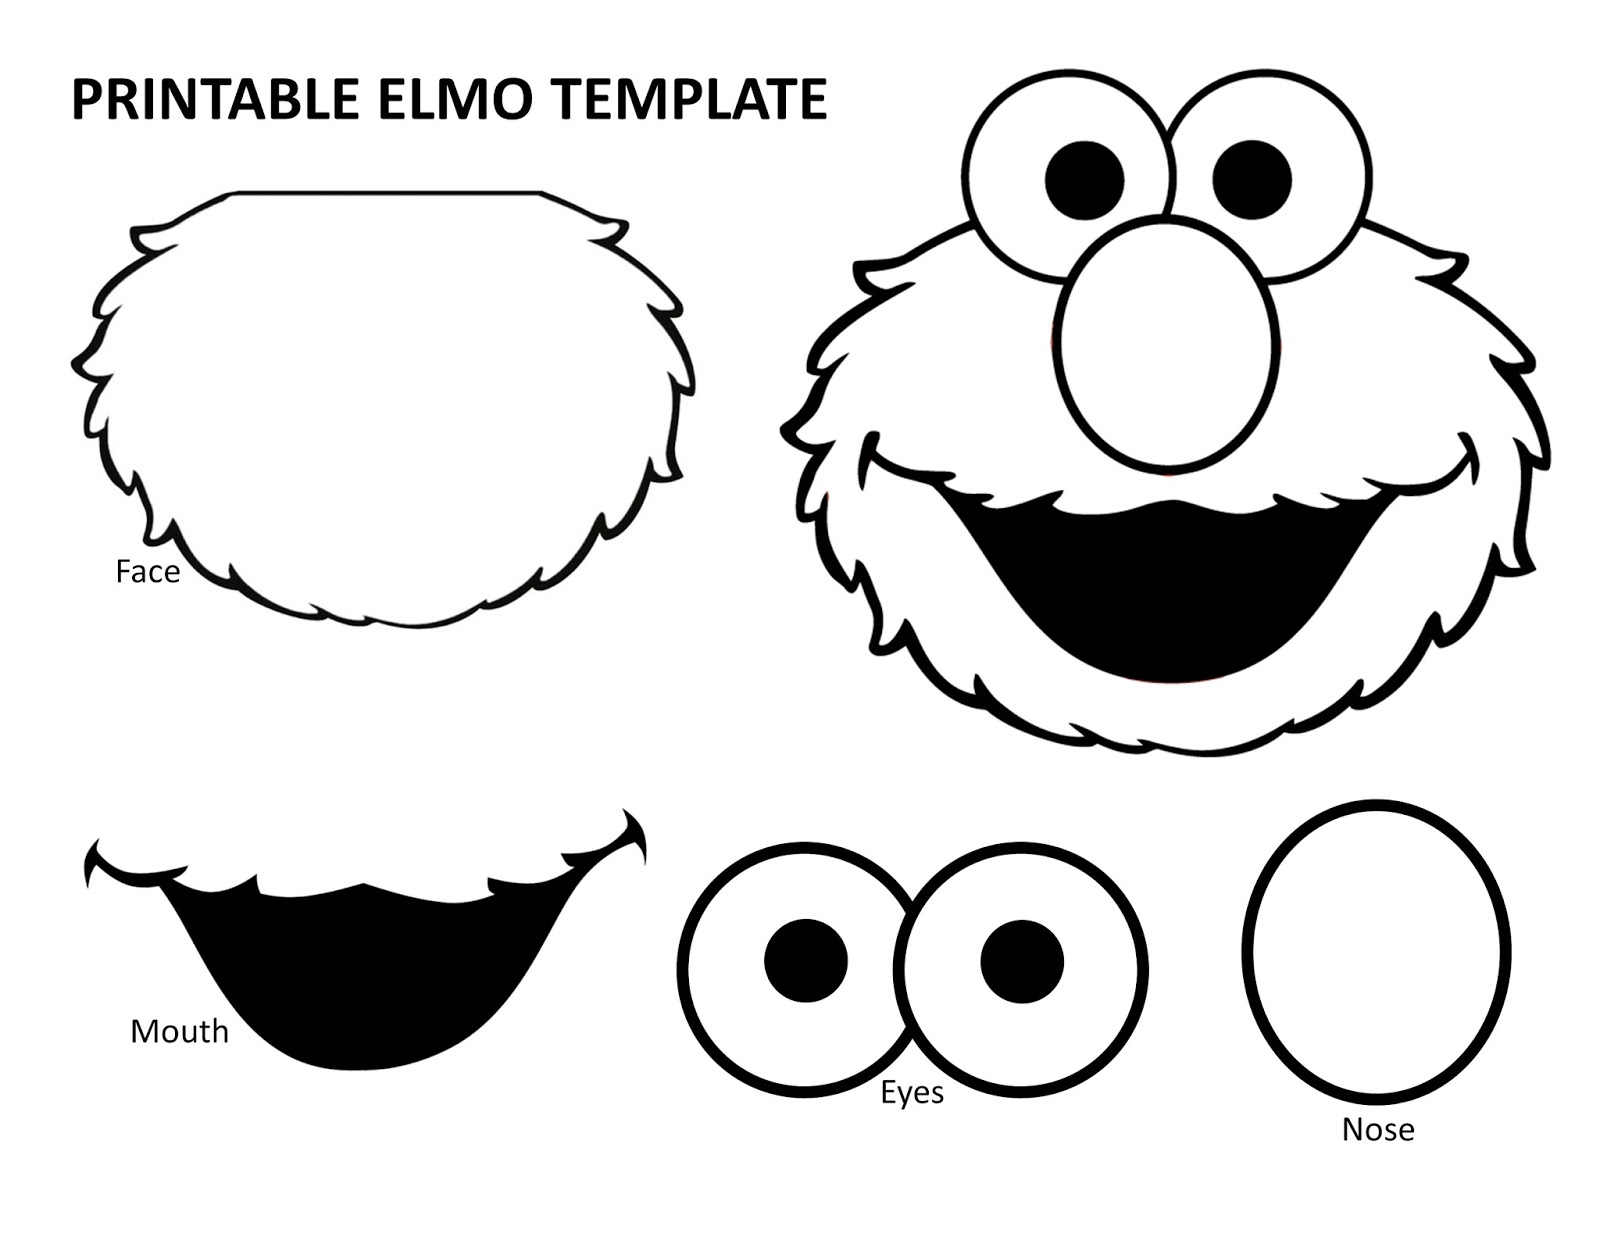 template monstre - richly blessed emery turns two elmo birthday party